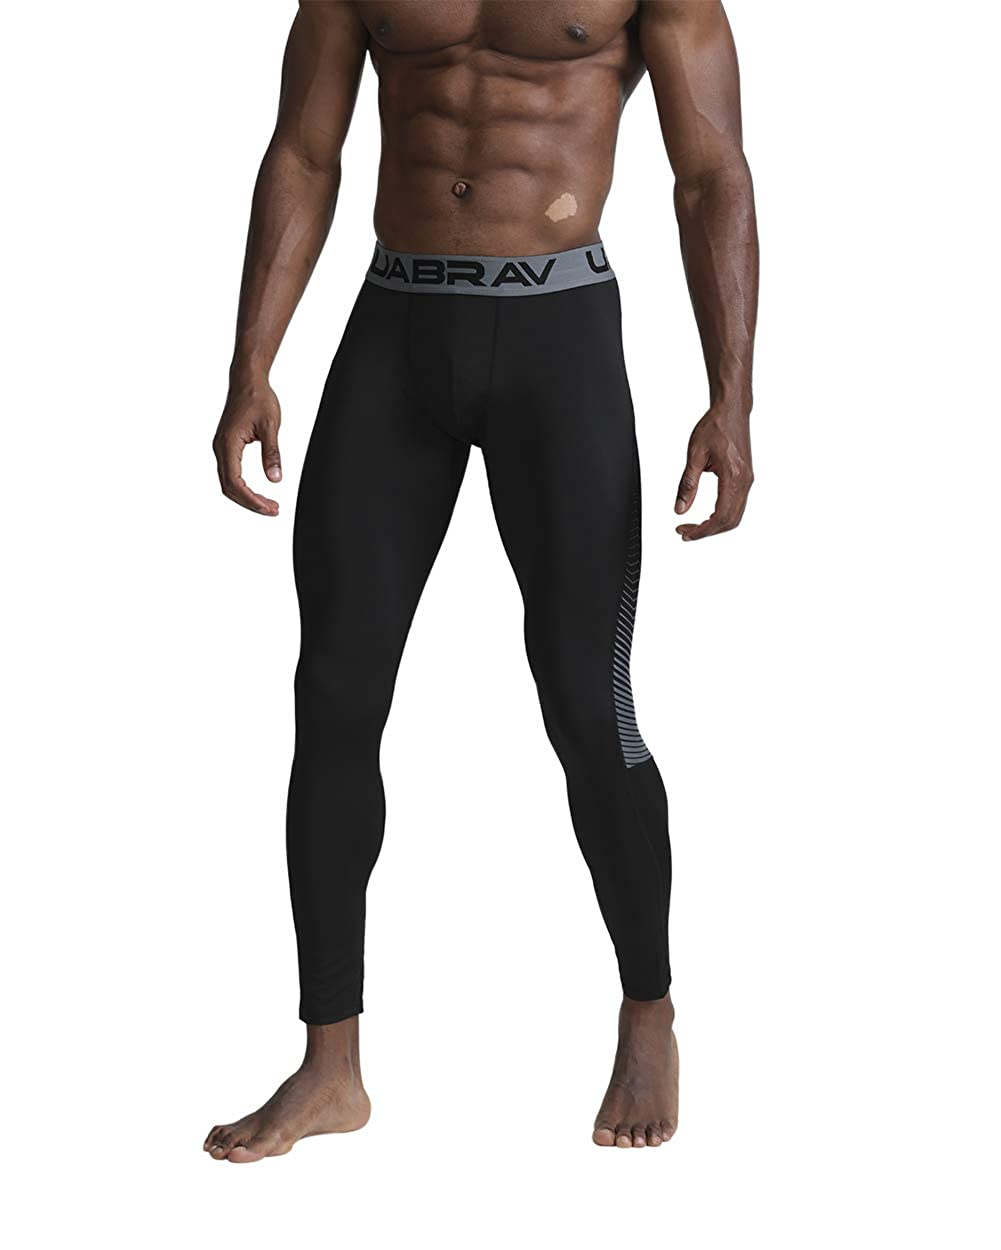 Speverdr/Mens/Compression/Pants/Cool/Dry/Sports Baselayer/Gym/Workout/Running/Underwear Tights